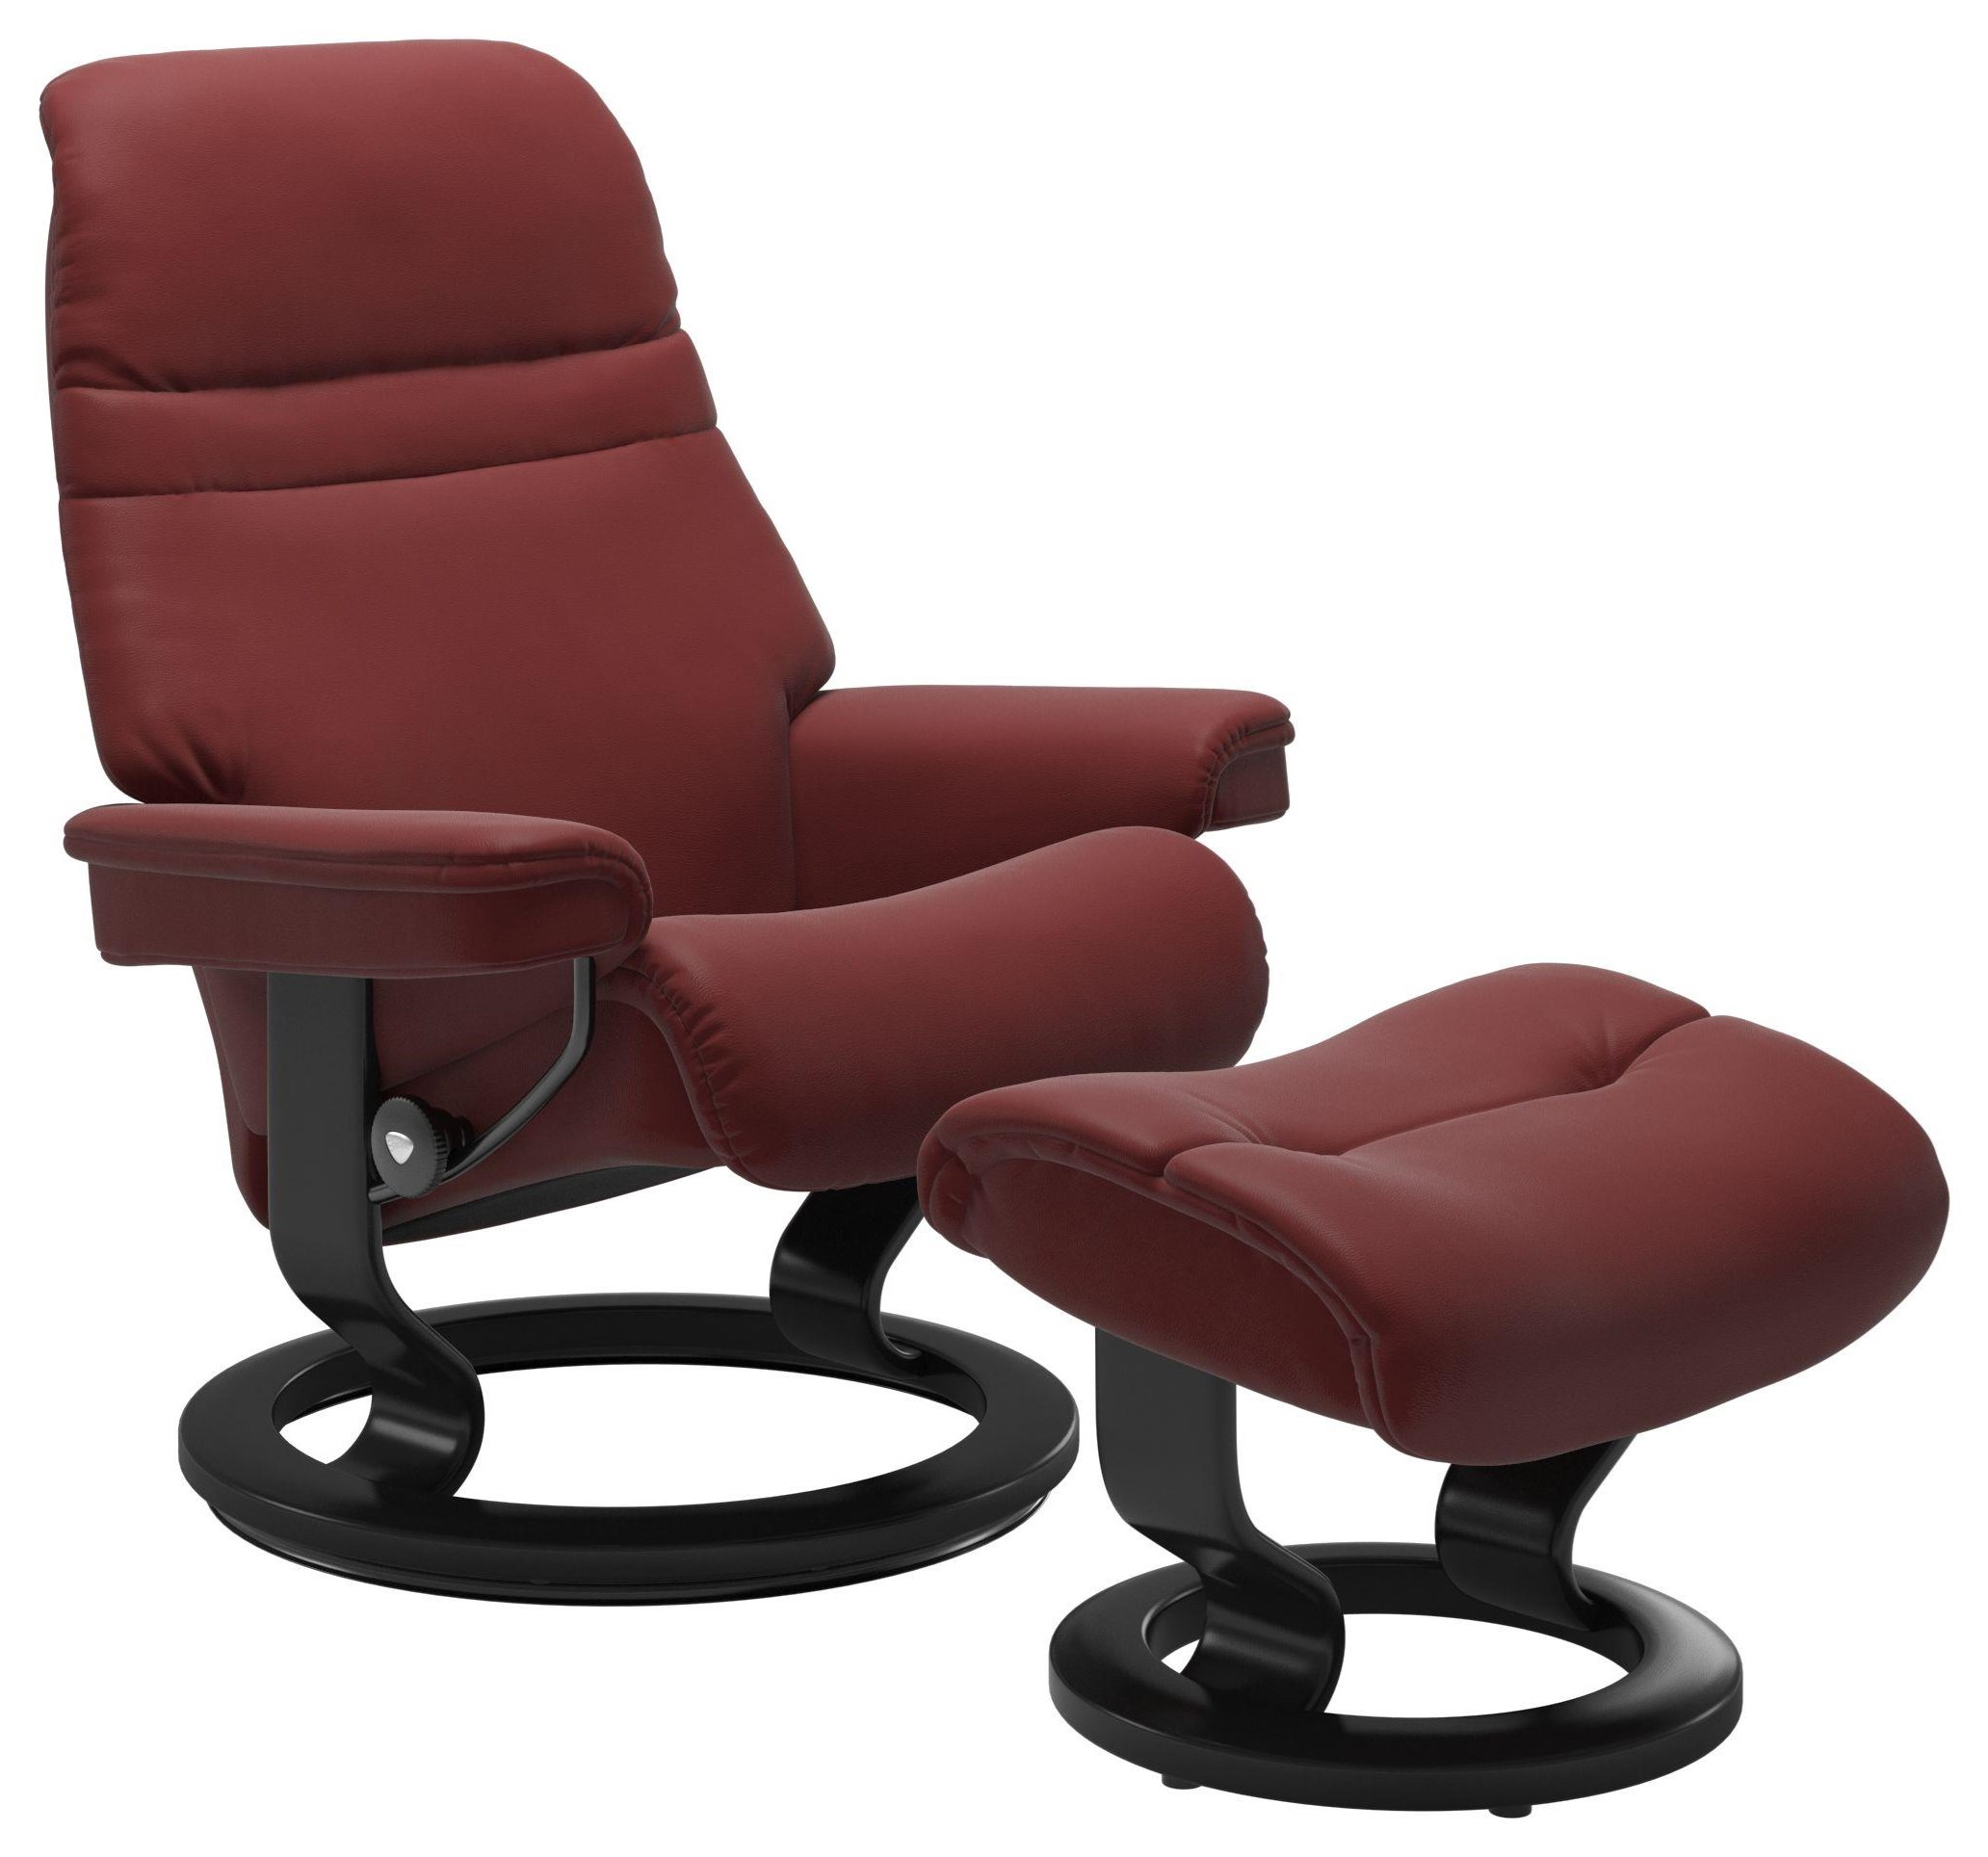 Sunrise Sunrise Classic by Stressless at Bennett's Furniture and Mattresses